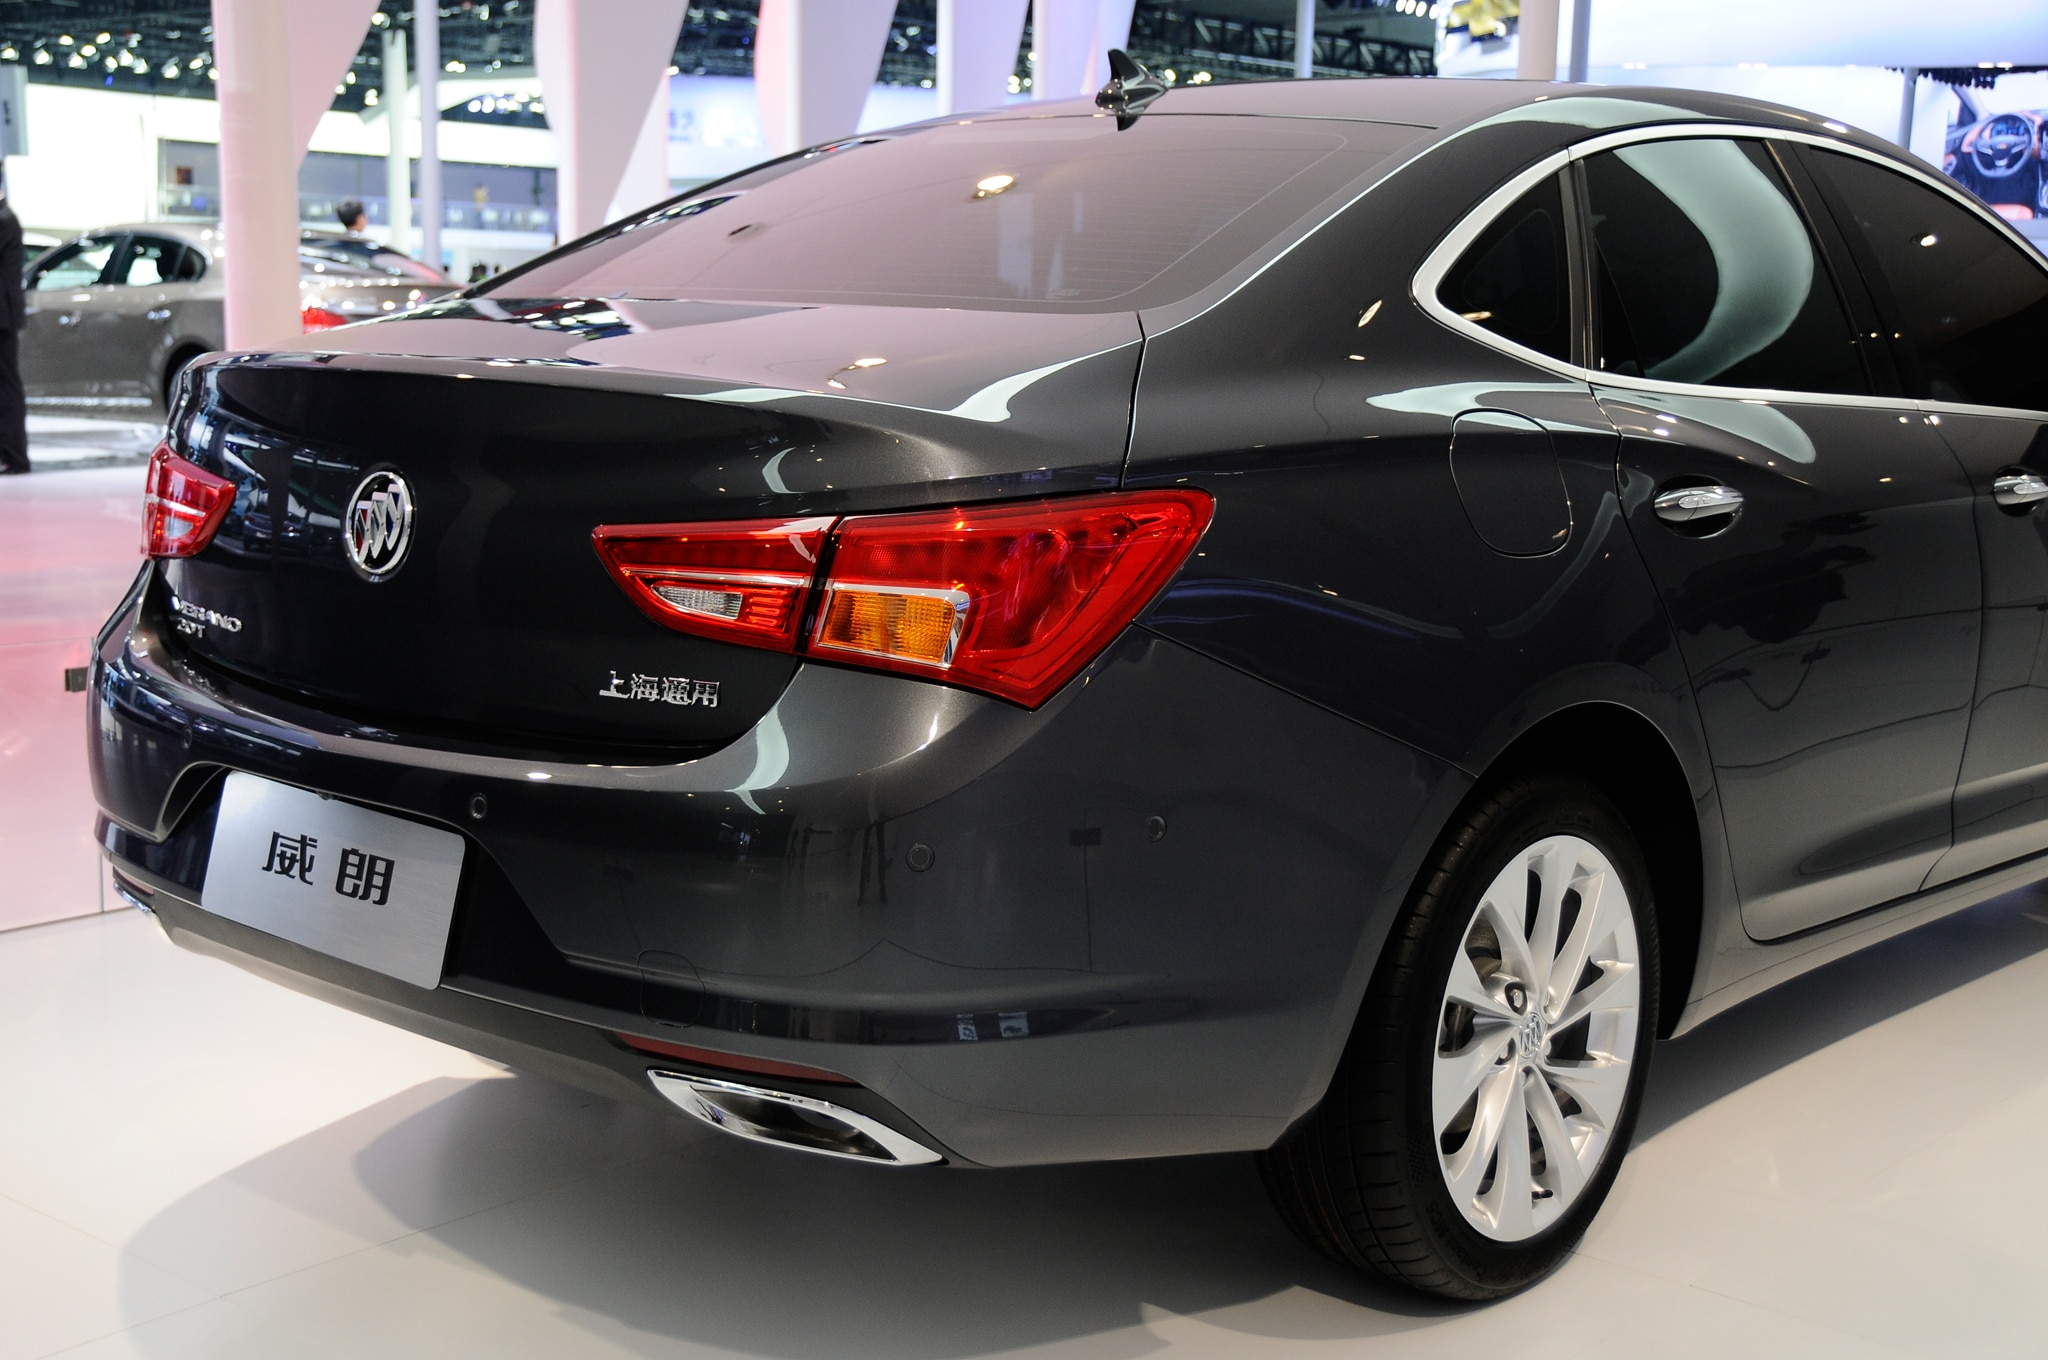 small verano the showing sedan summit year previous buick luxury in image white